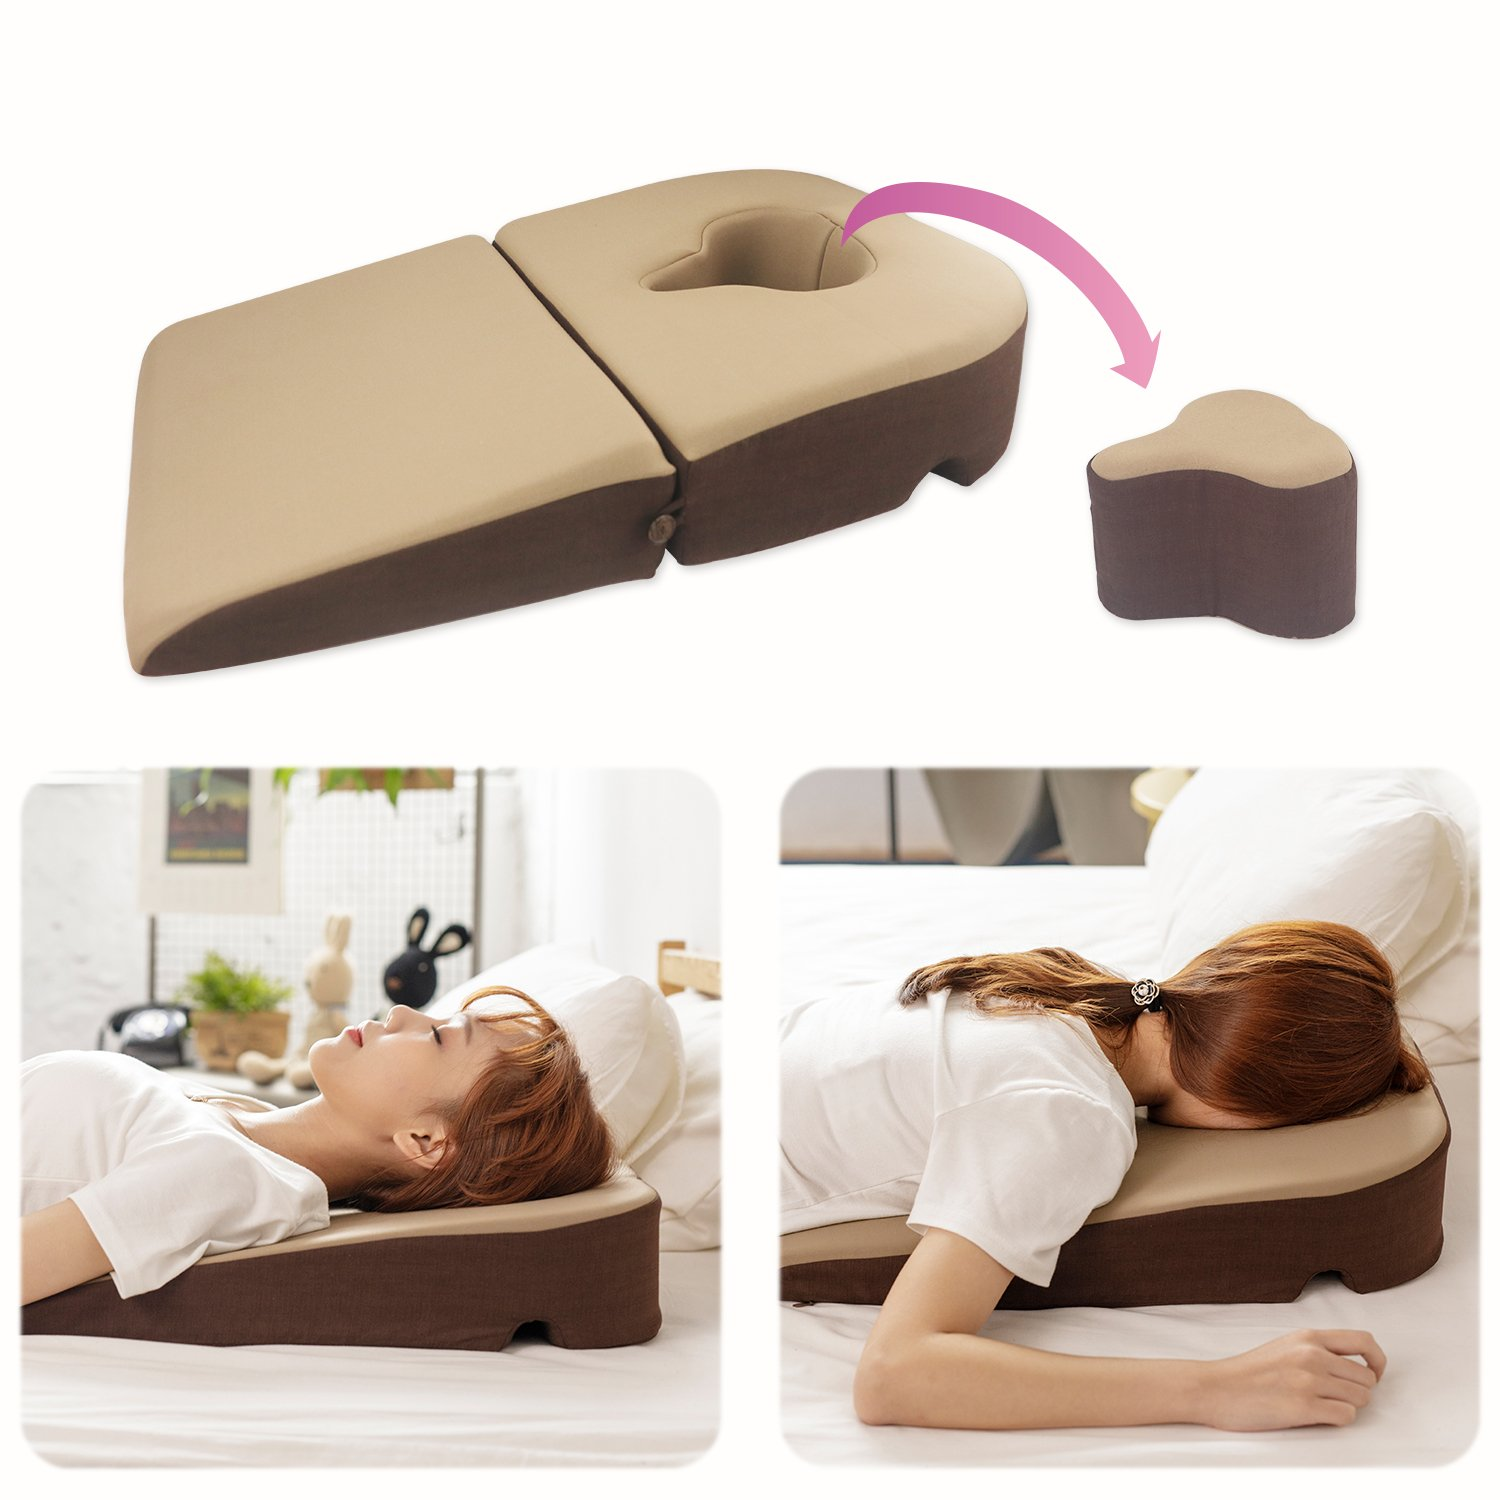 Prodigy TW Face Down Pillow, for Post-Eye-Surgery use,Wedge Cushion, Removable Cover by Prodigy TW (Image #1)